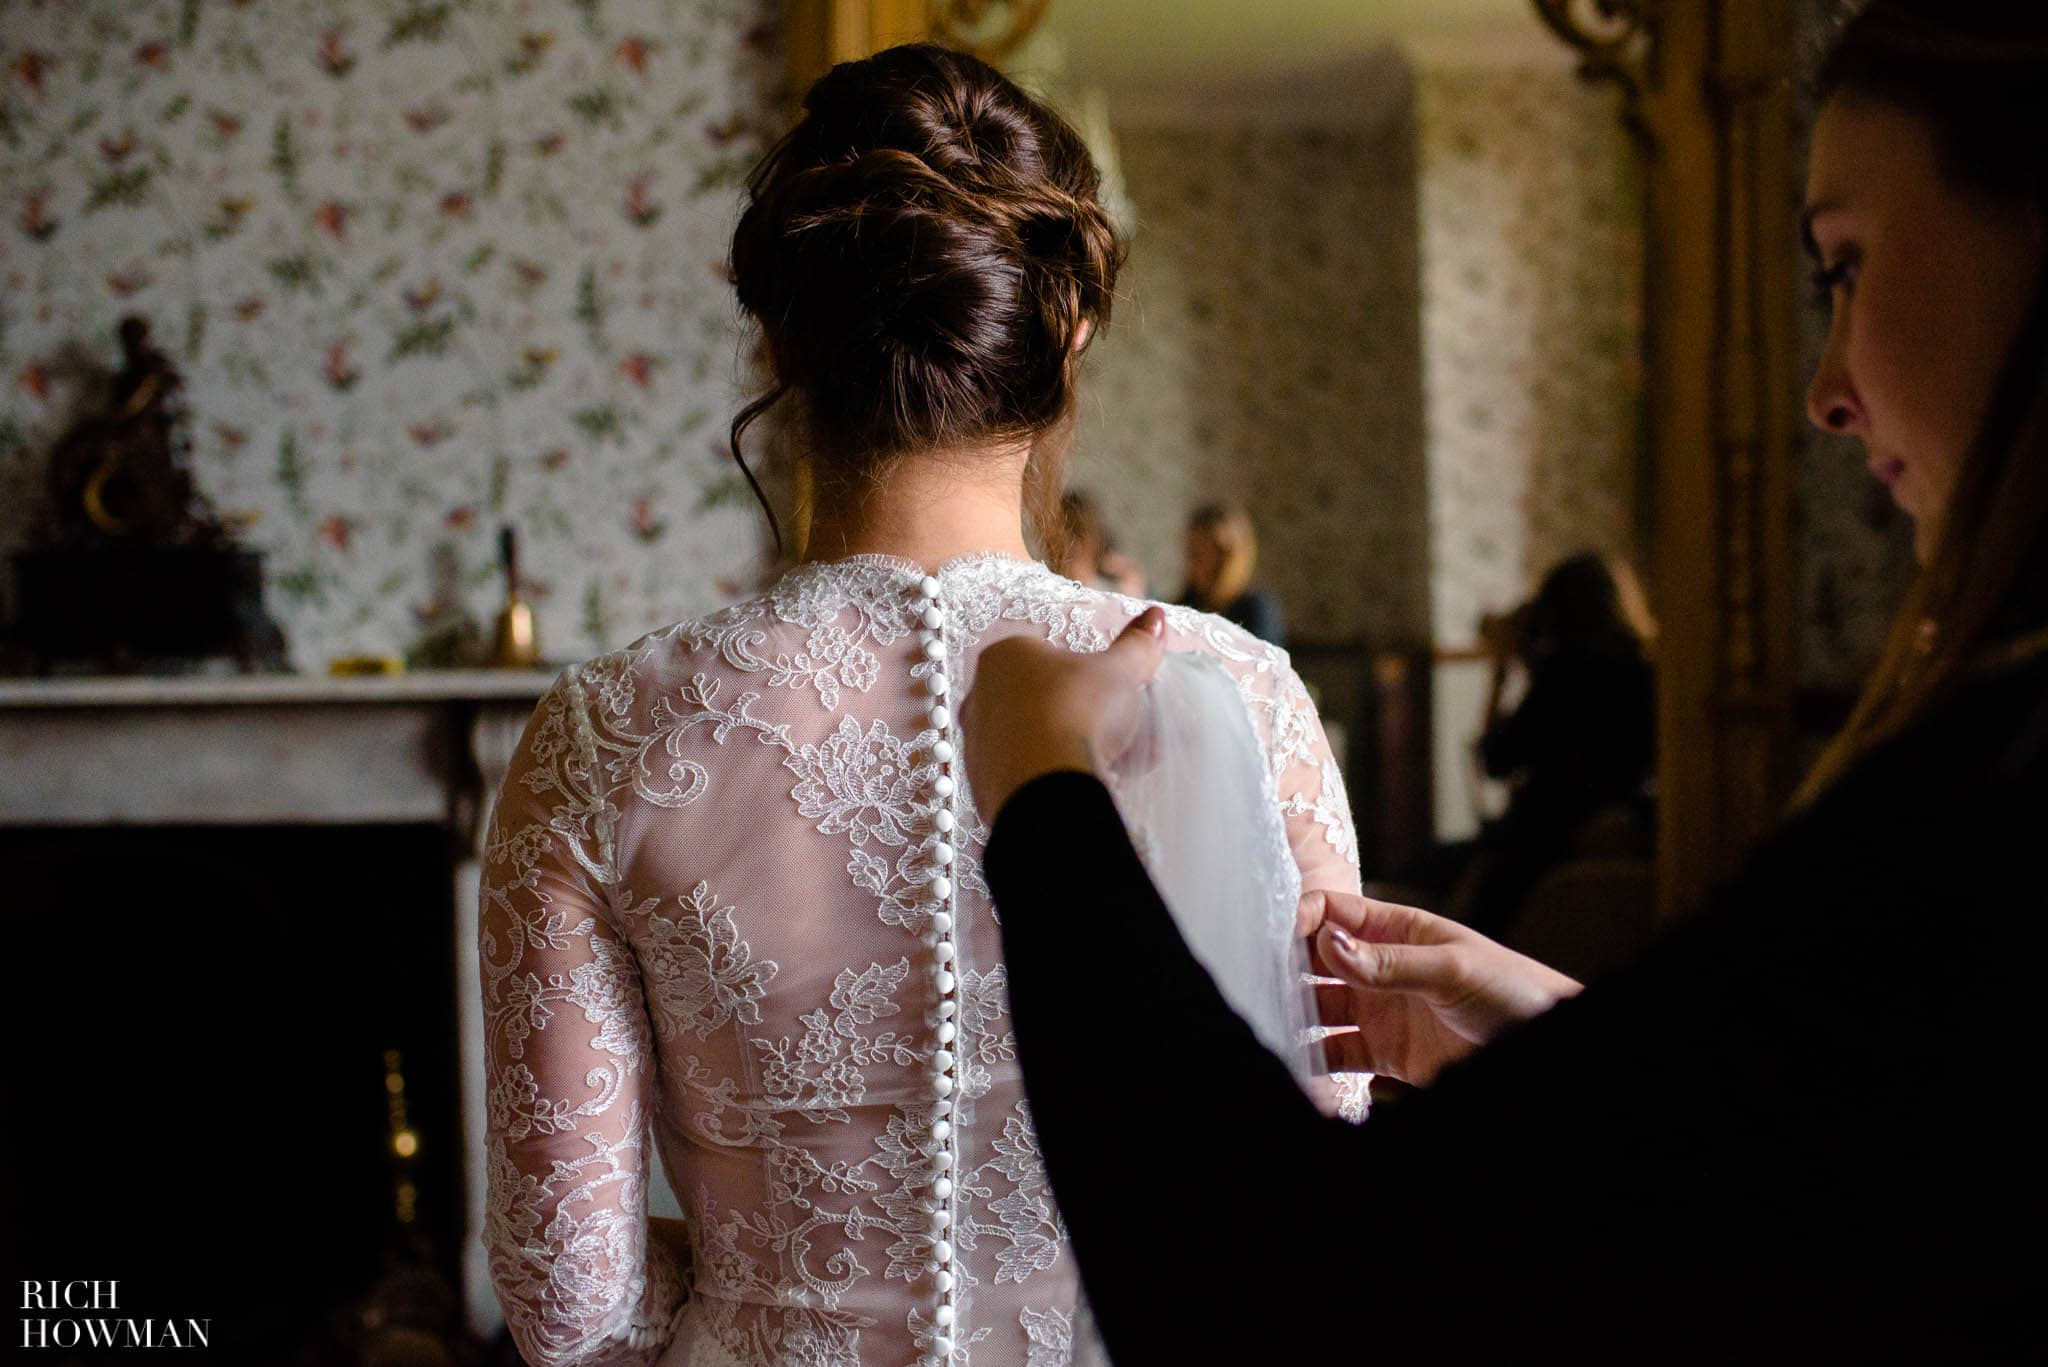 Bride in her wedding dress from behind